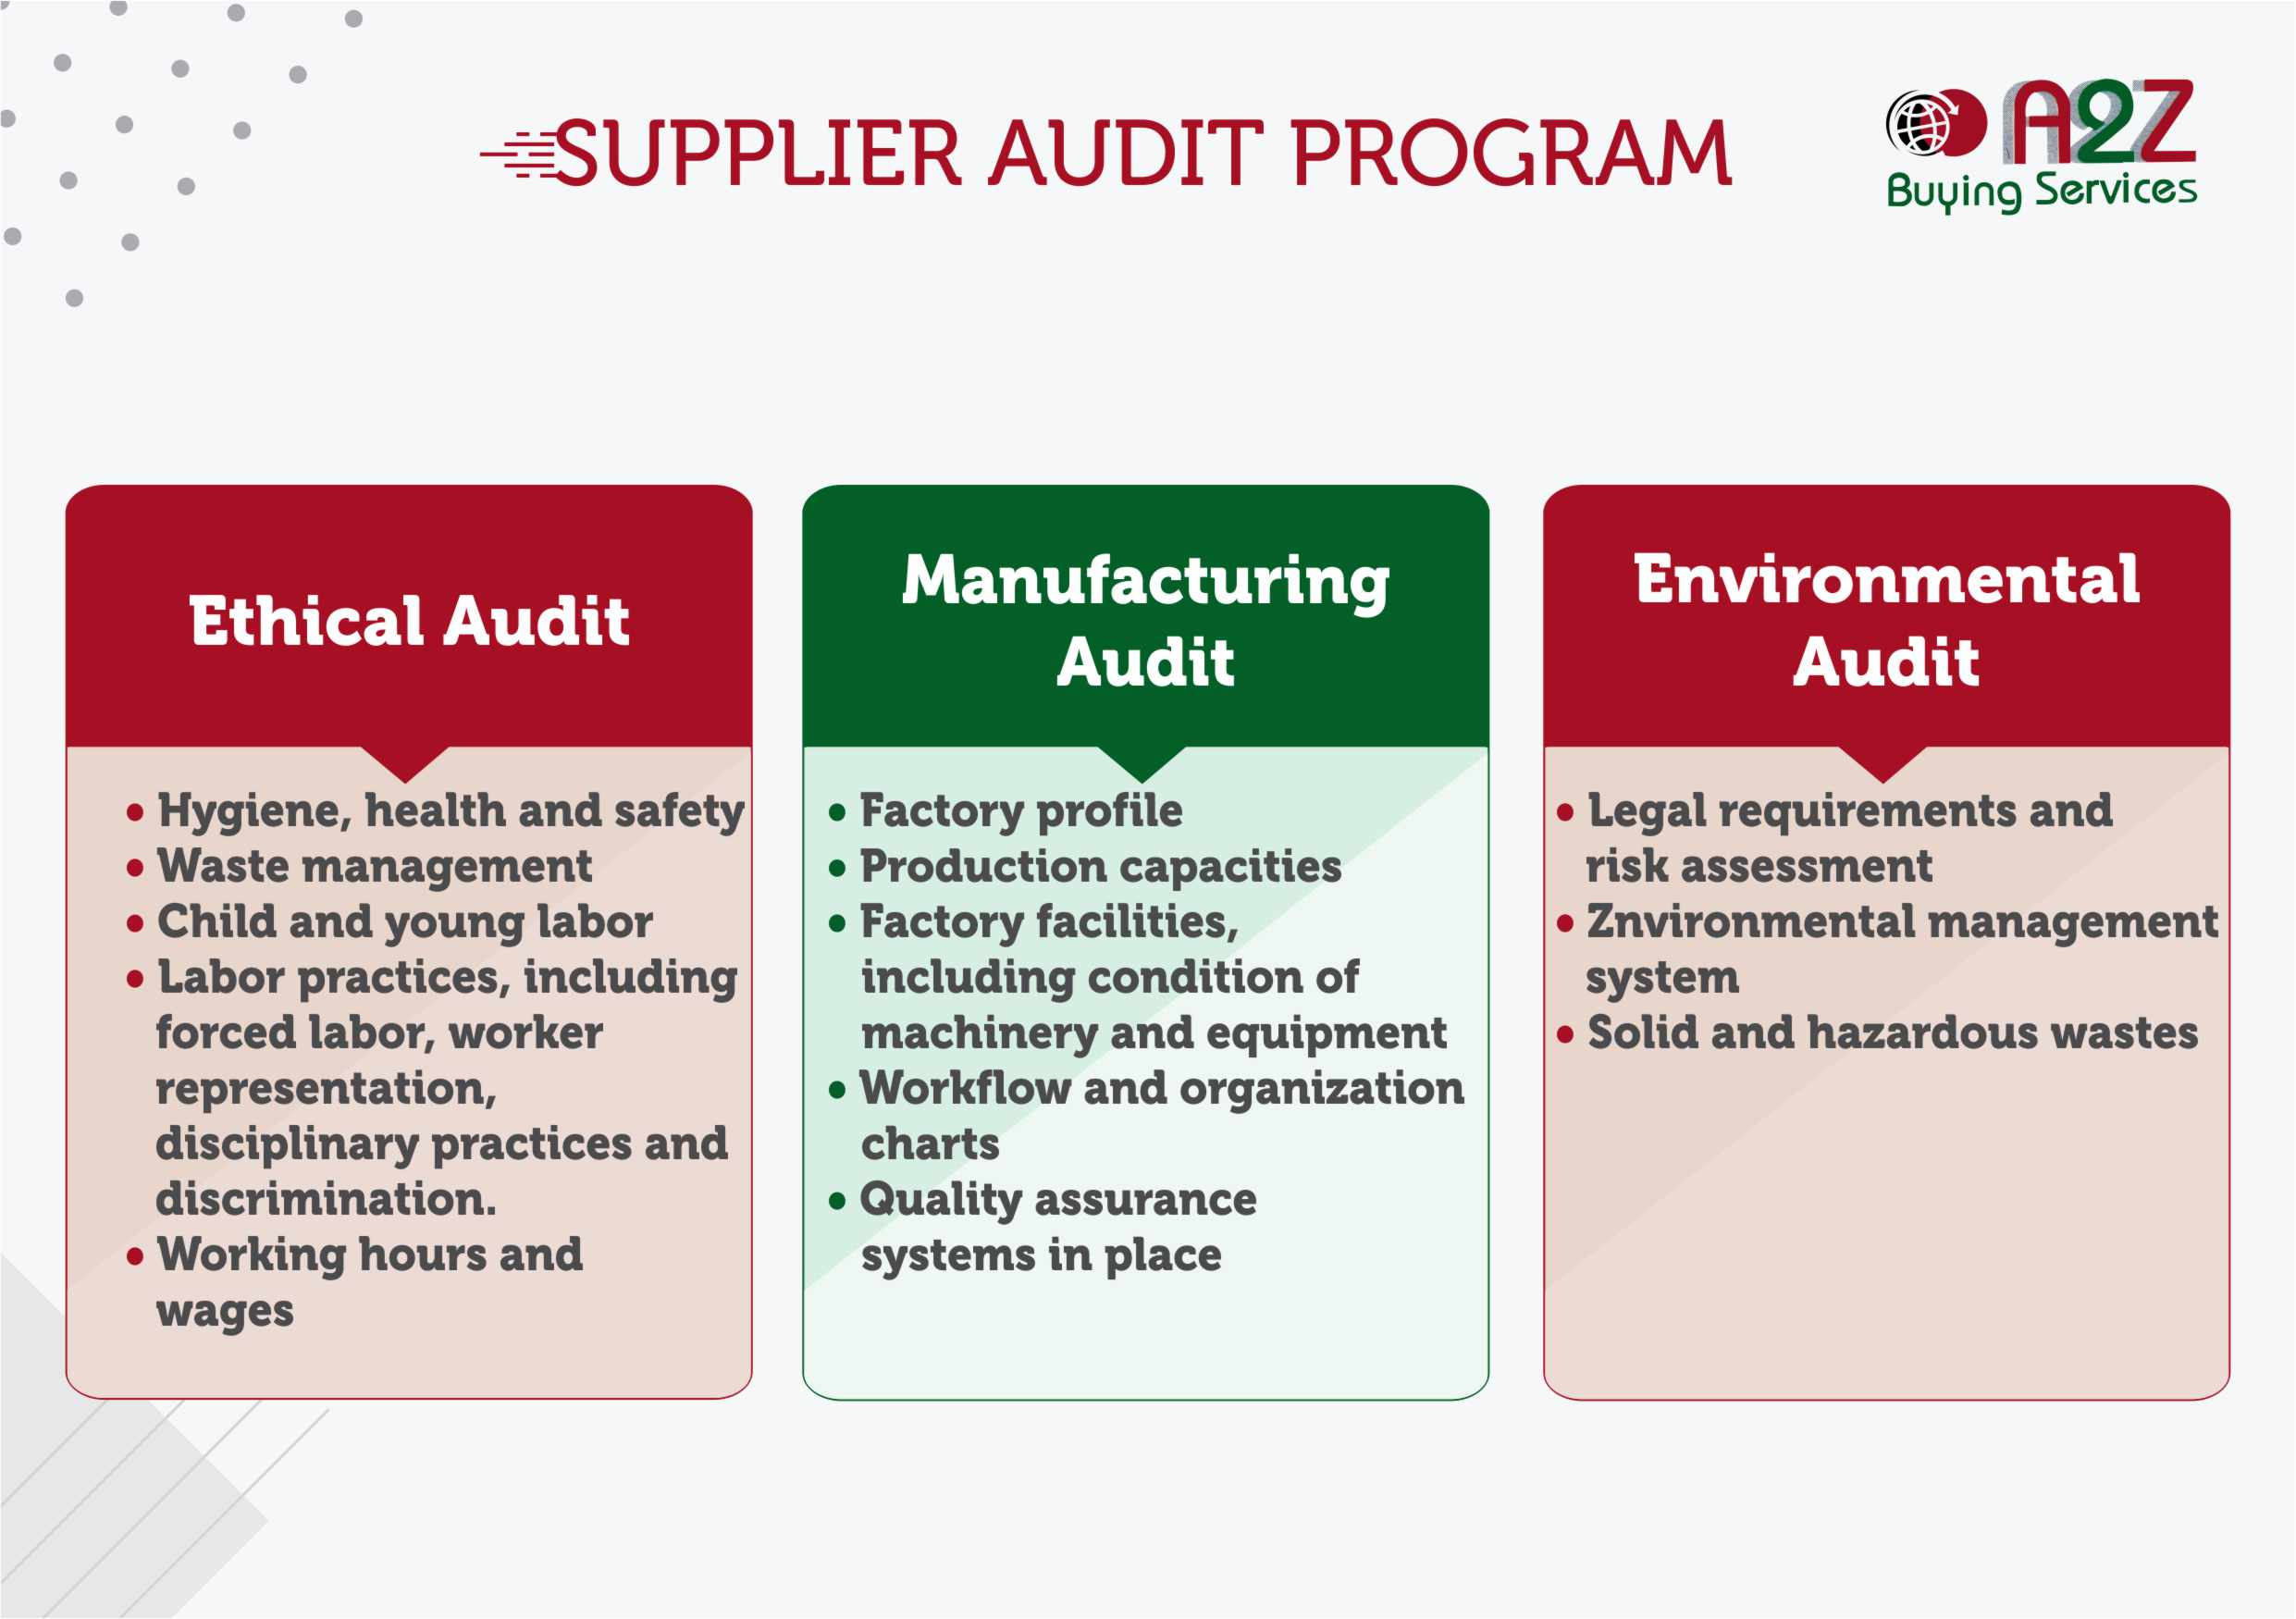 Supplier Audit Program